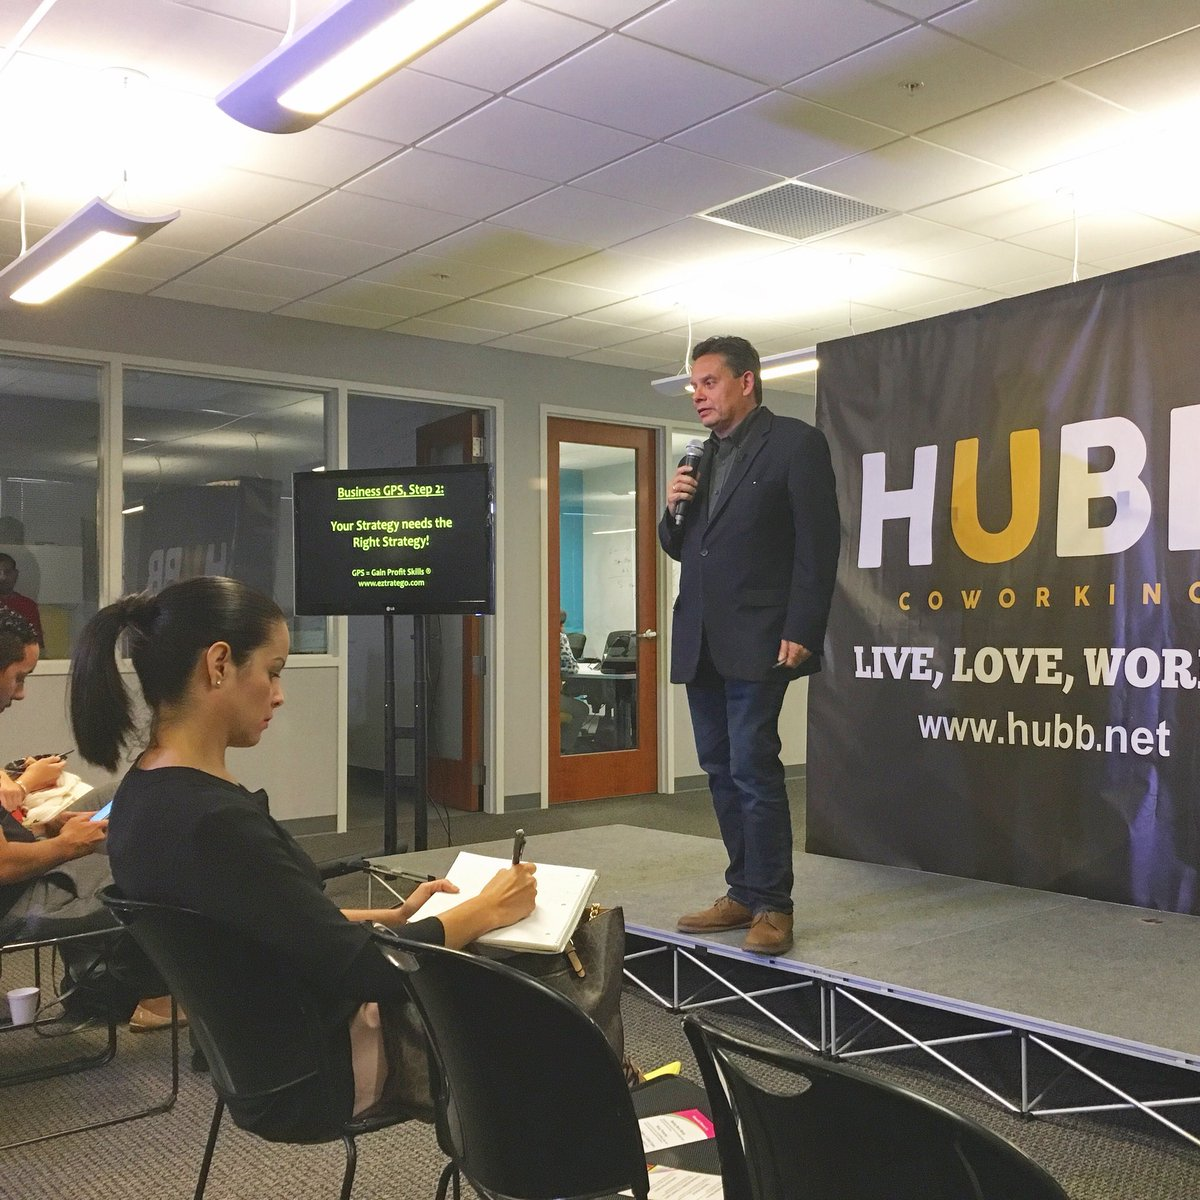 Had a great run yesterday at the #hubbcoworking weekly keynote weekly talk! Lots of young and talented #entrepreneurs #Miami is full of them!! Thanks @franco_aquino and @julioben7 for the kind invitation!!! Thanks to the #hubcoworking team !! #eztratego #Keynote #businesspic.twitter.com/ZfdBpZZFmv